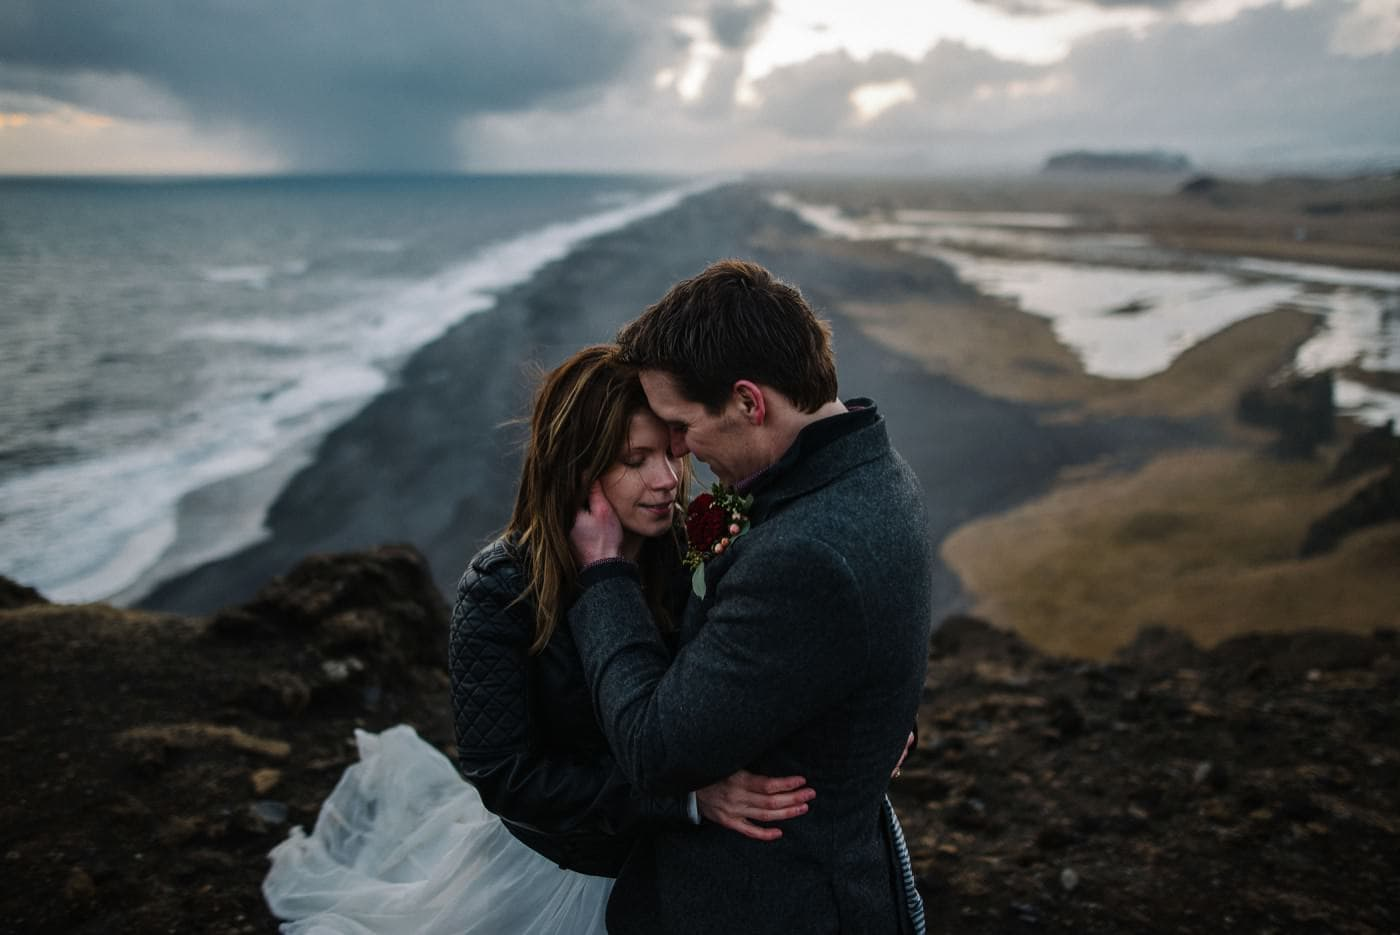 iceland-wedding-photographer-advenuture-elopement-iceland-photography_0117